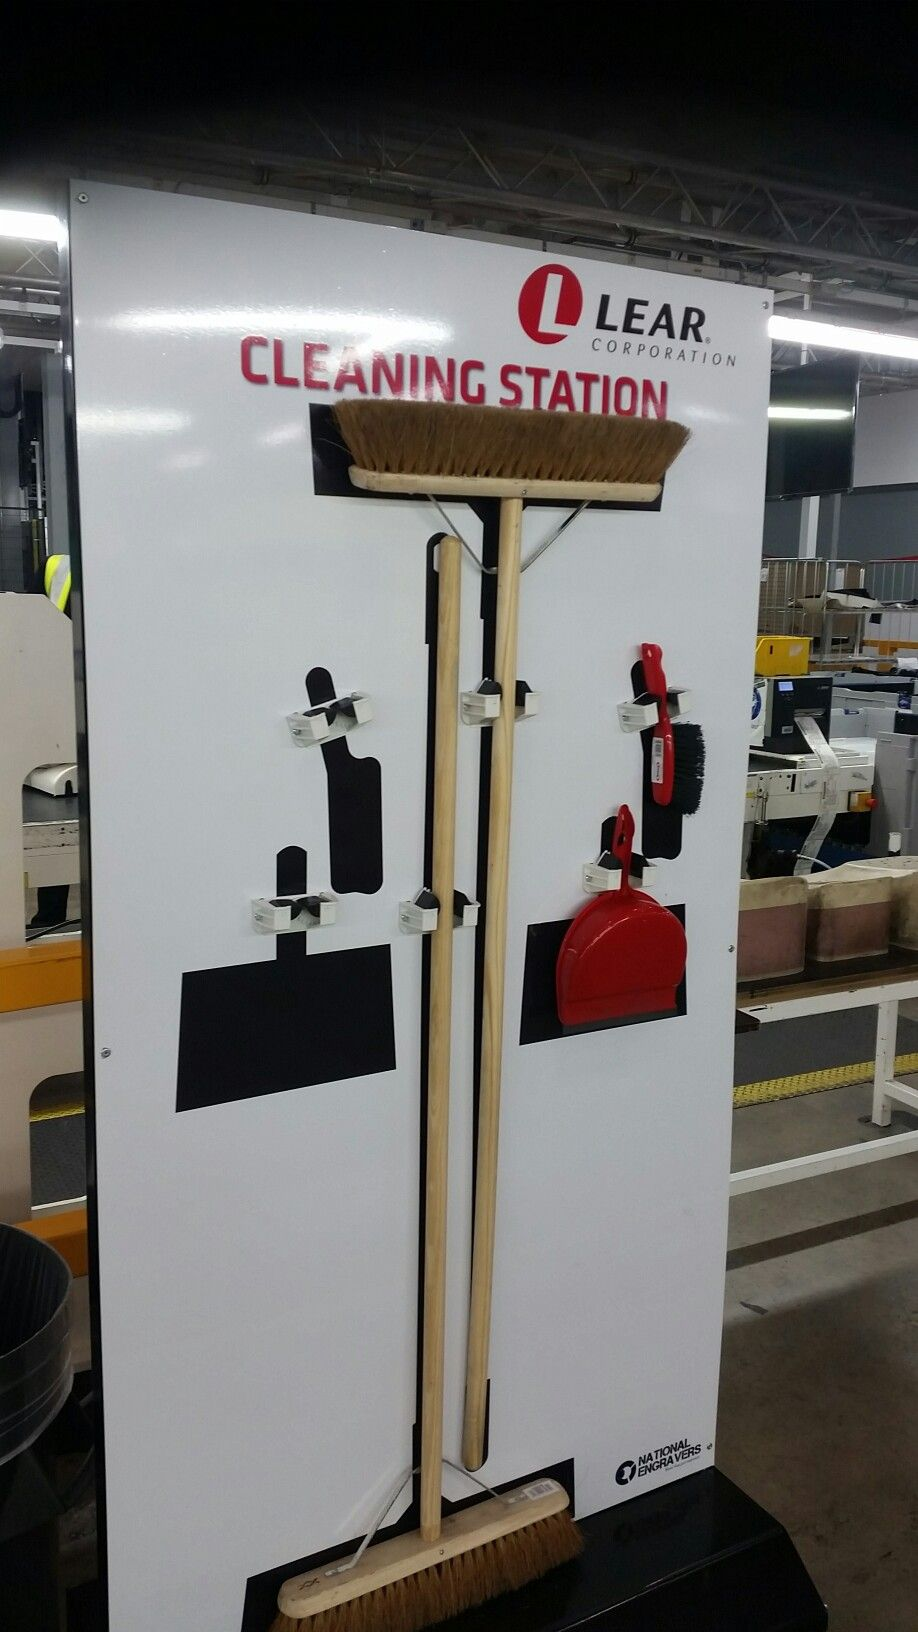 5s Mobile Cleaning Station 5s Visual Management Lean